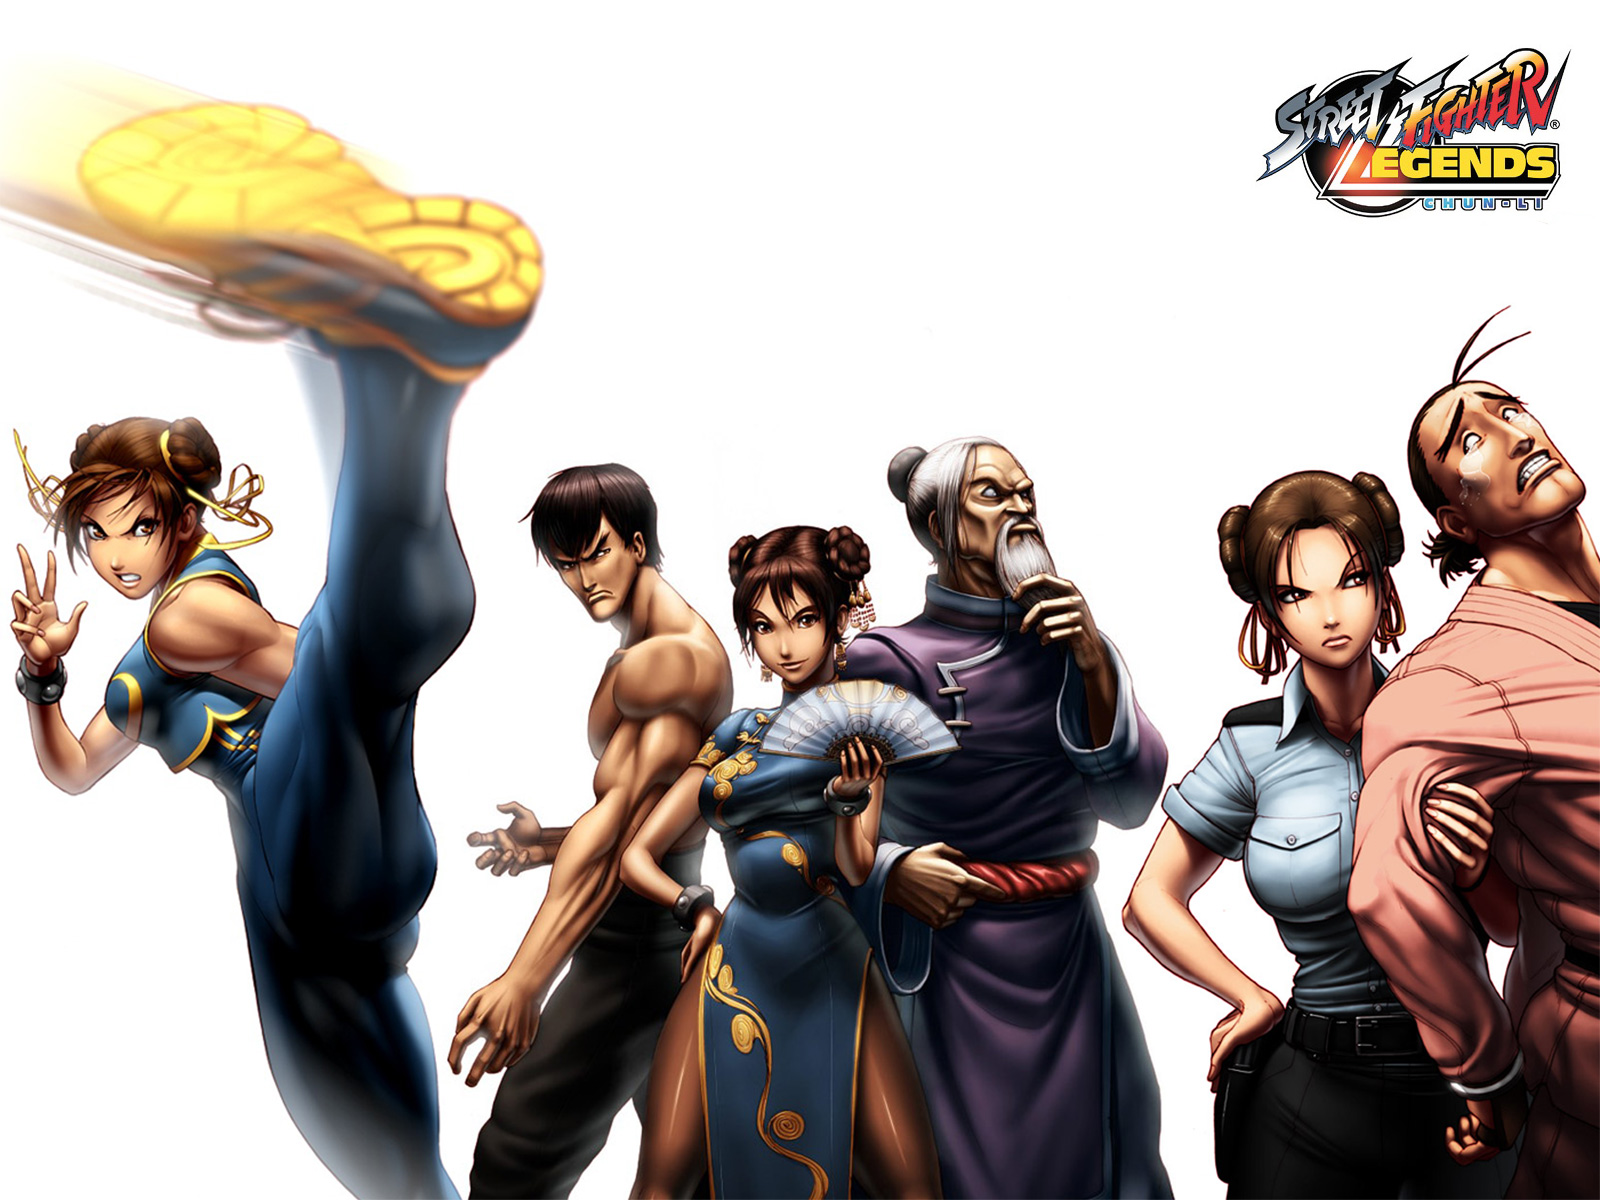 marvel vs capcom 3 wallpaper.